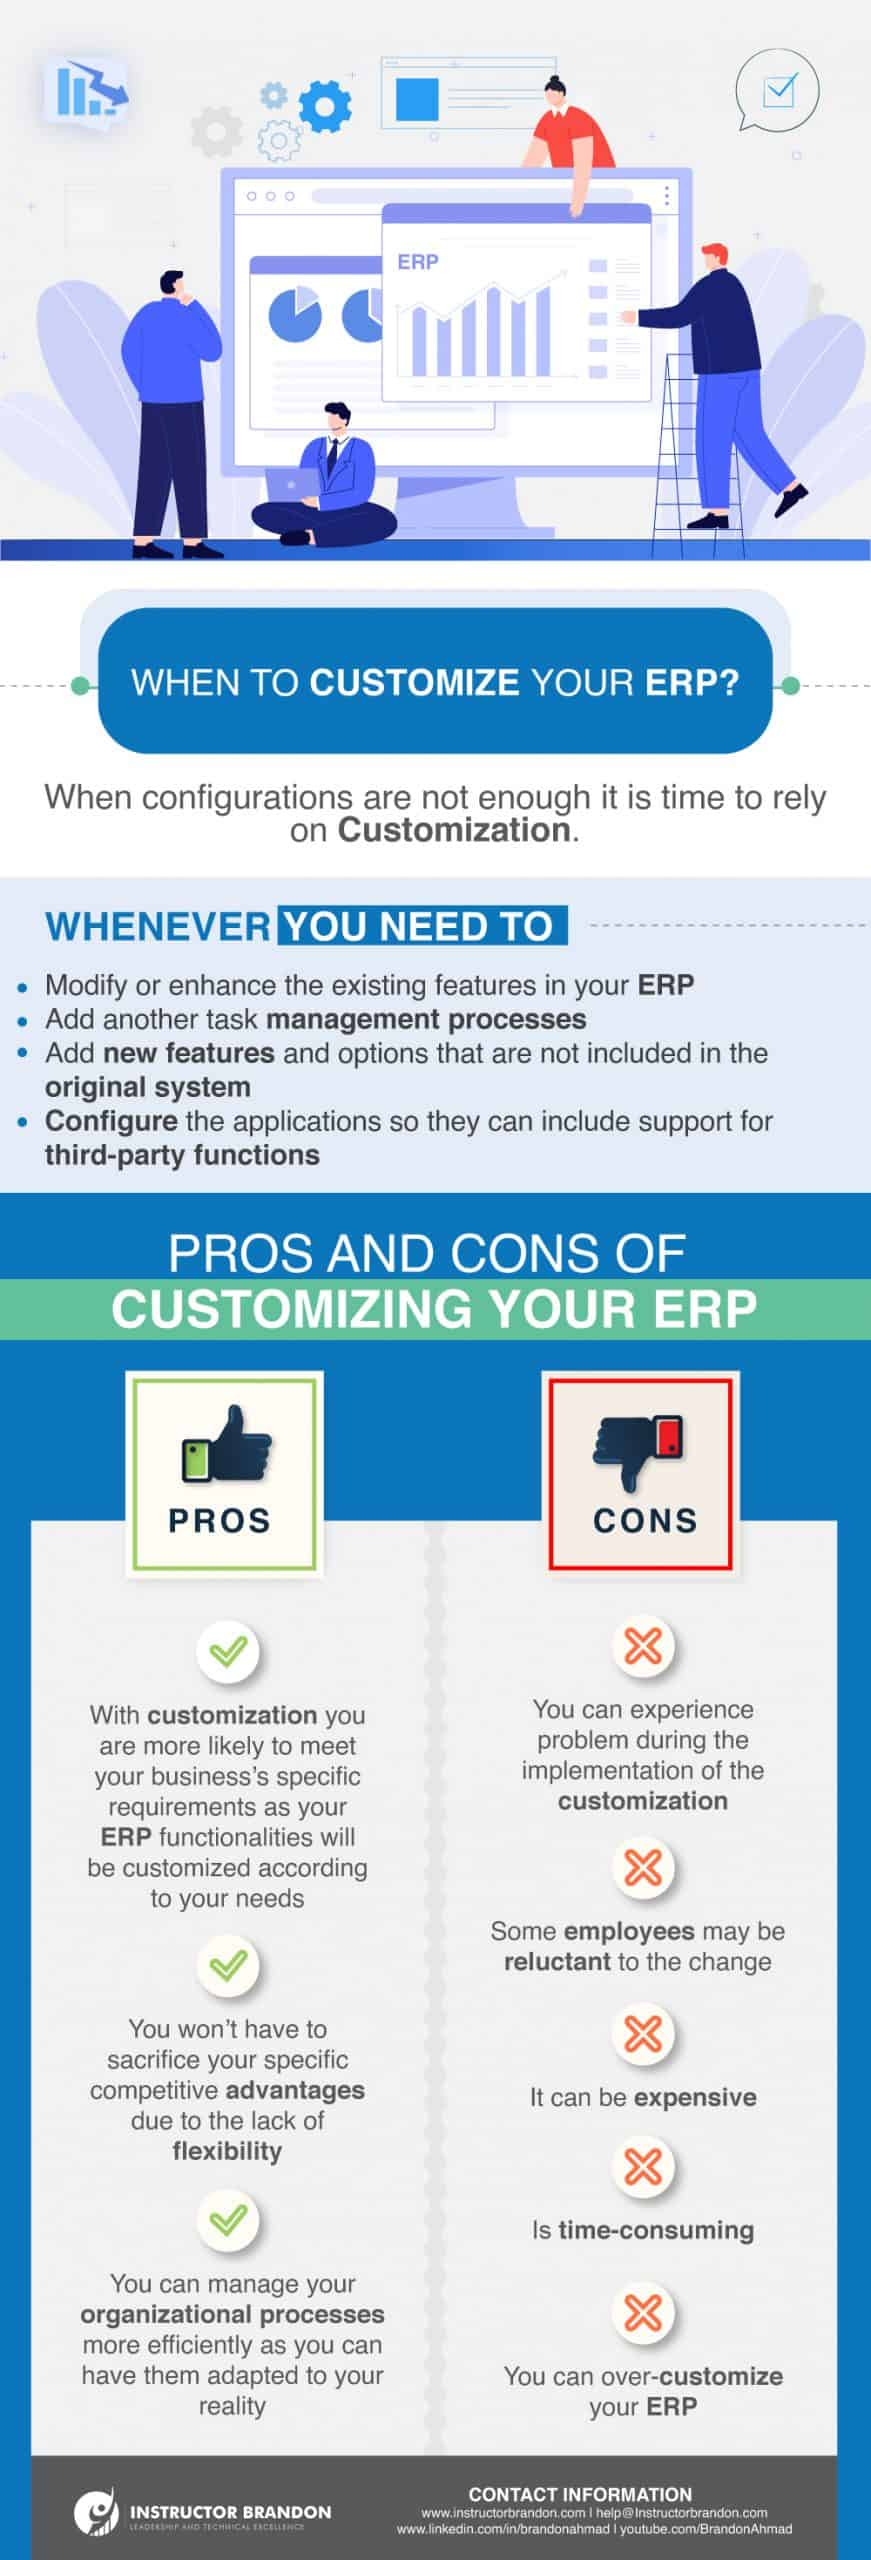 Getting ERP Customization to meet your Strategic Initiatives